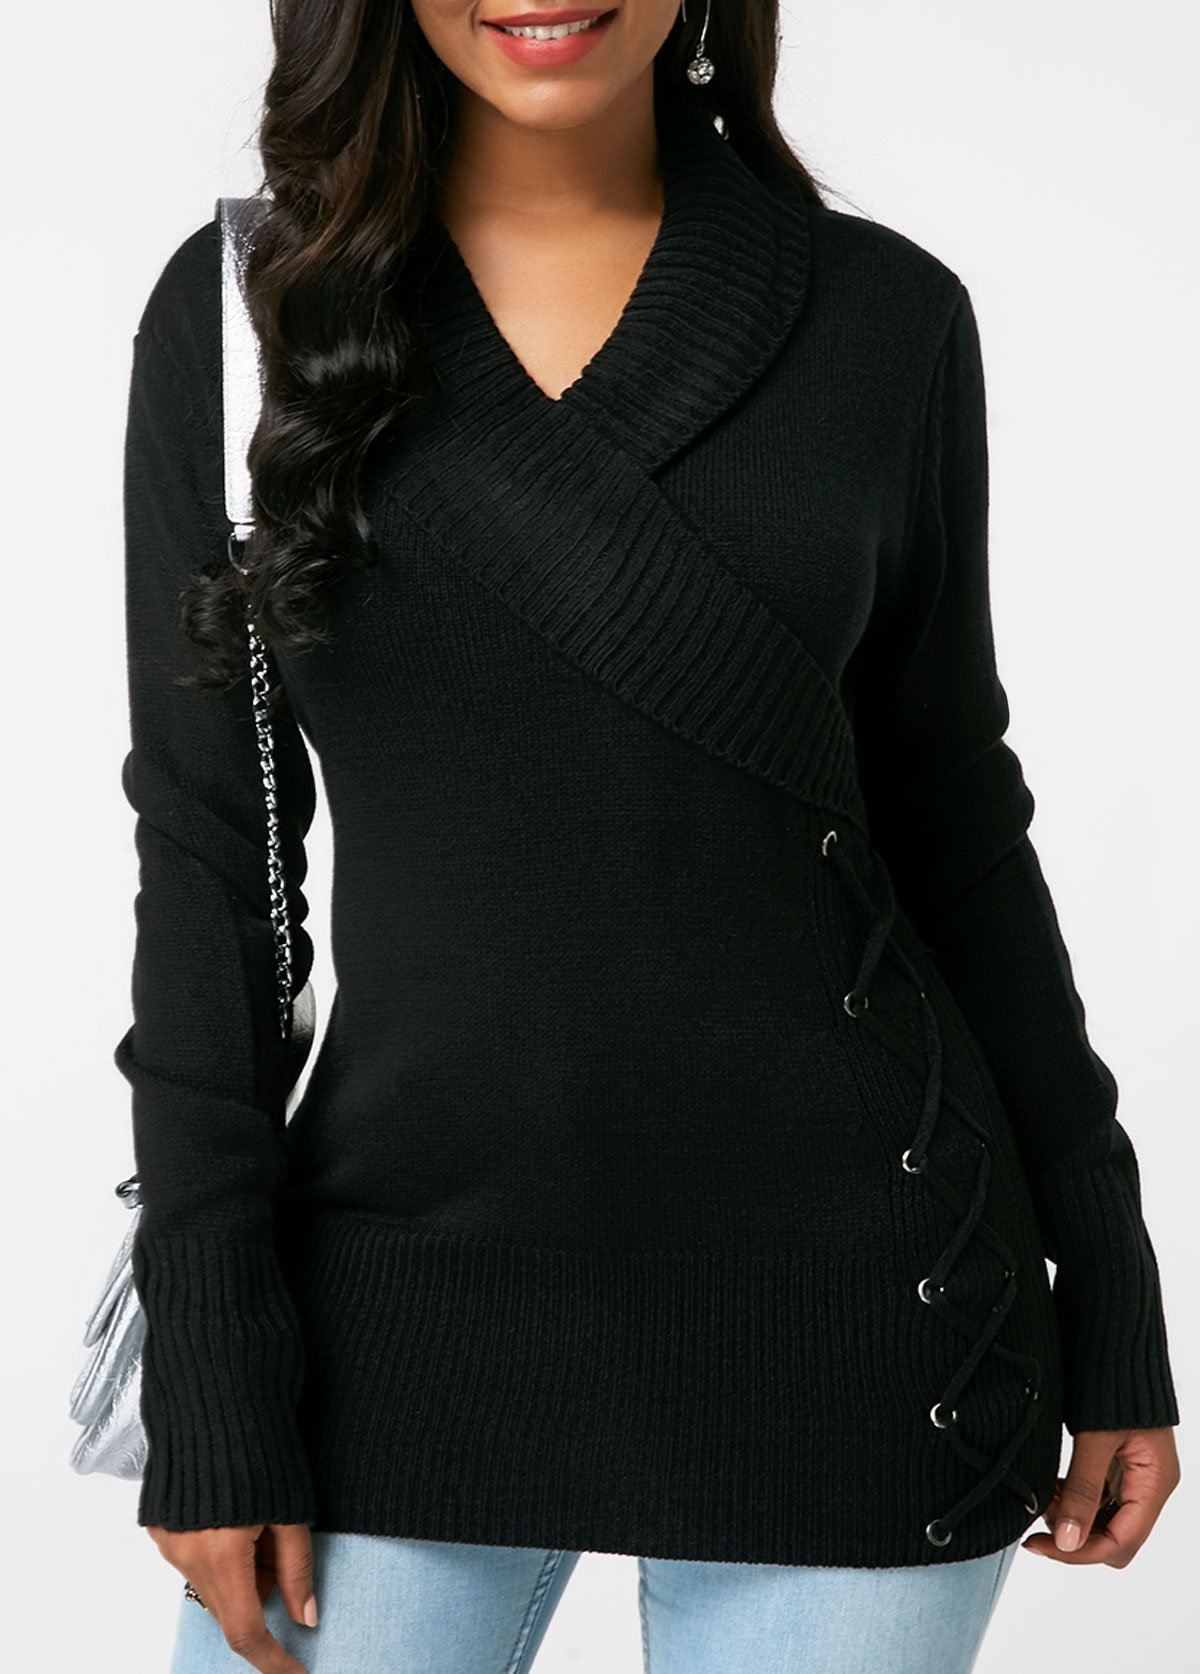 Lace Up Detail Long Sleeve Black Sweater